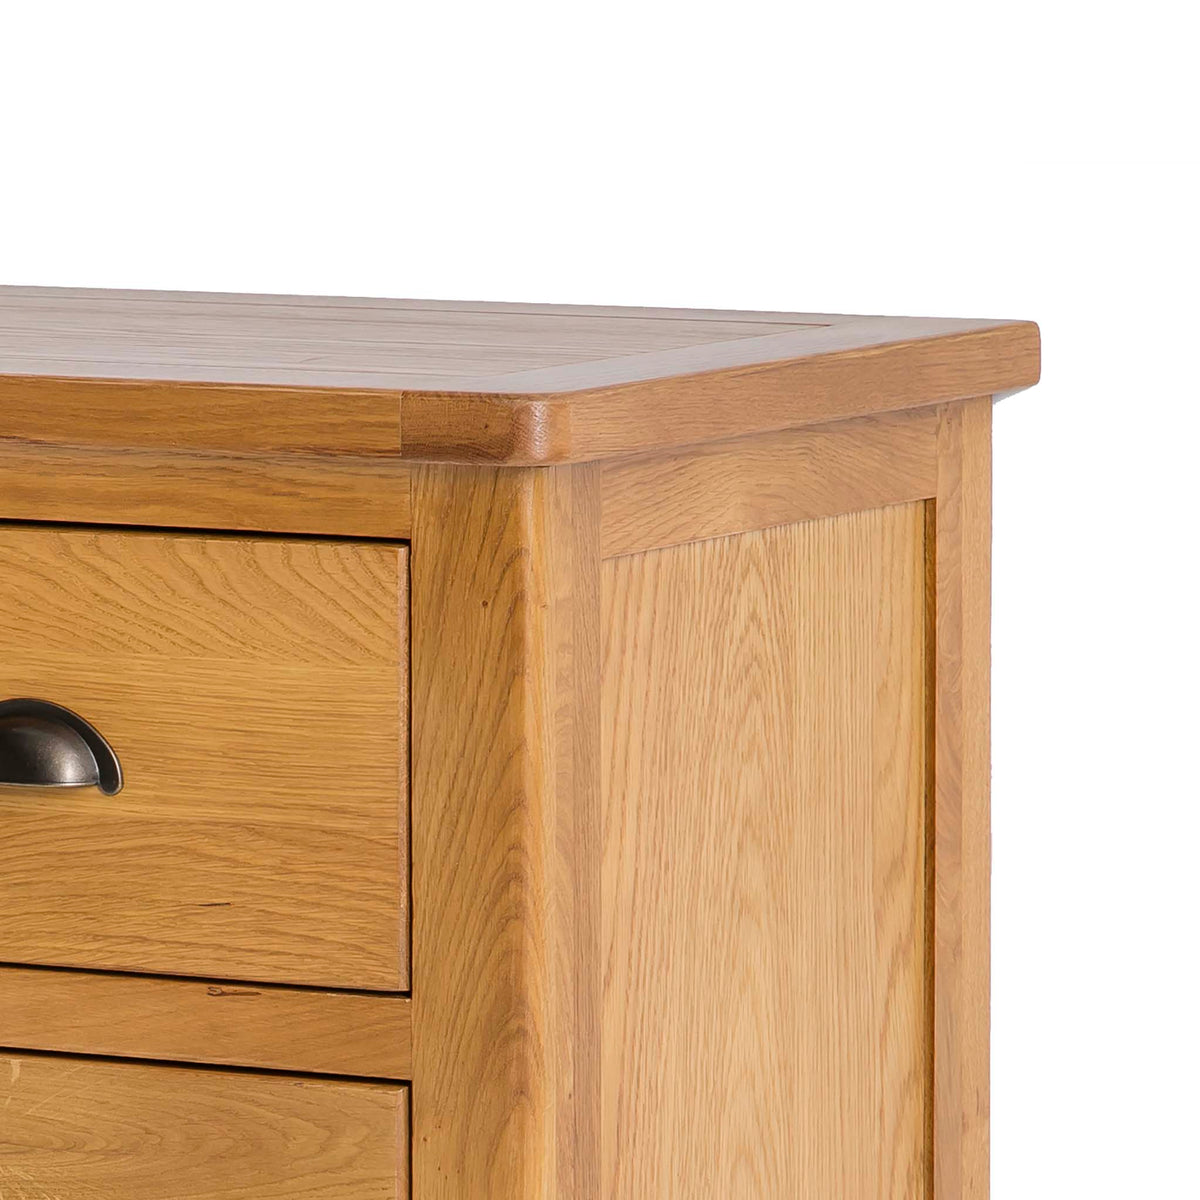 Roseland Oak 2 Over 2 Drawer Chest of Drawers - Close up of top of chest